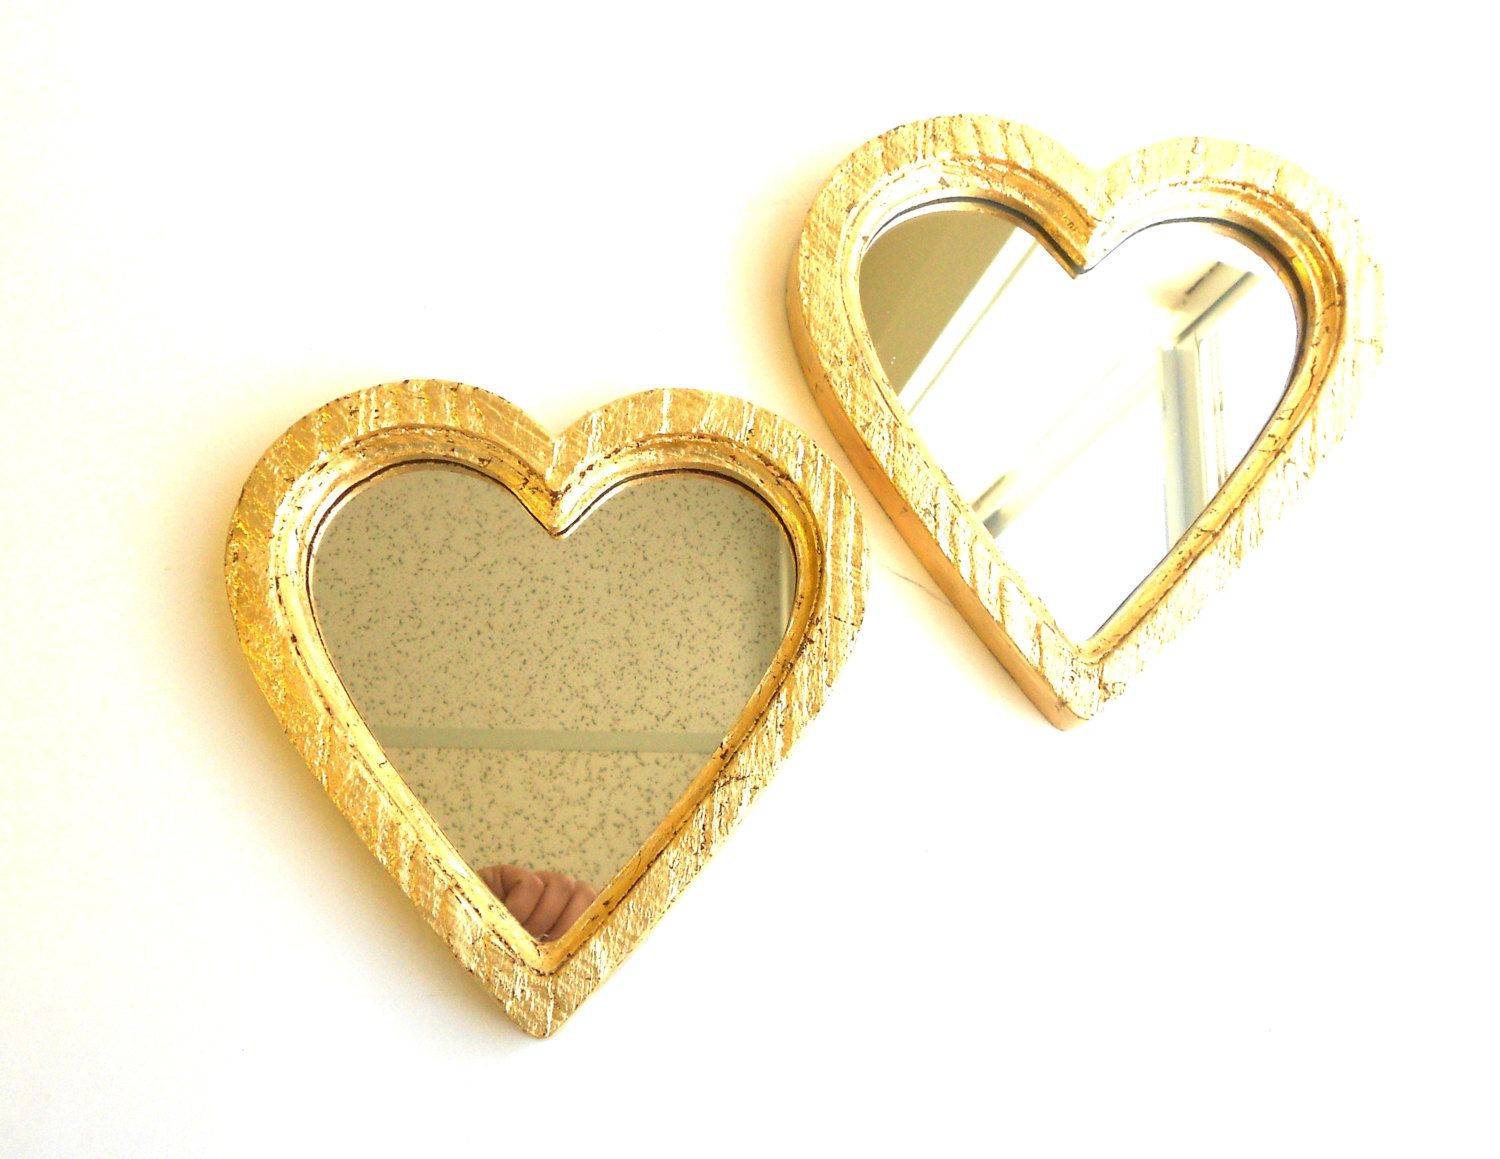 8x7.75, Mirrors Gold, Heart Mirrors, Decorative Mirrors, Wall ...